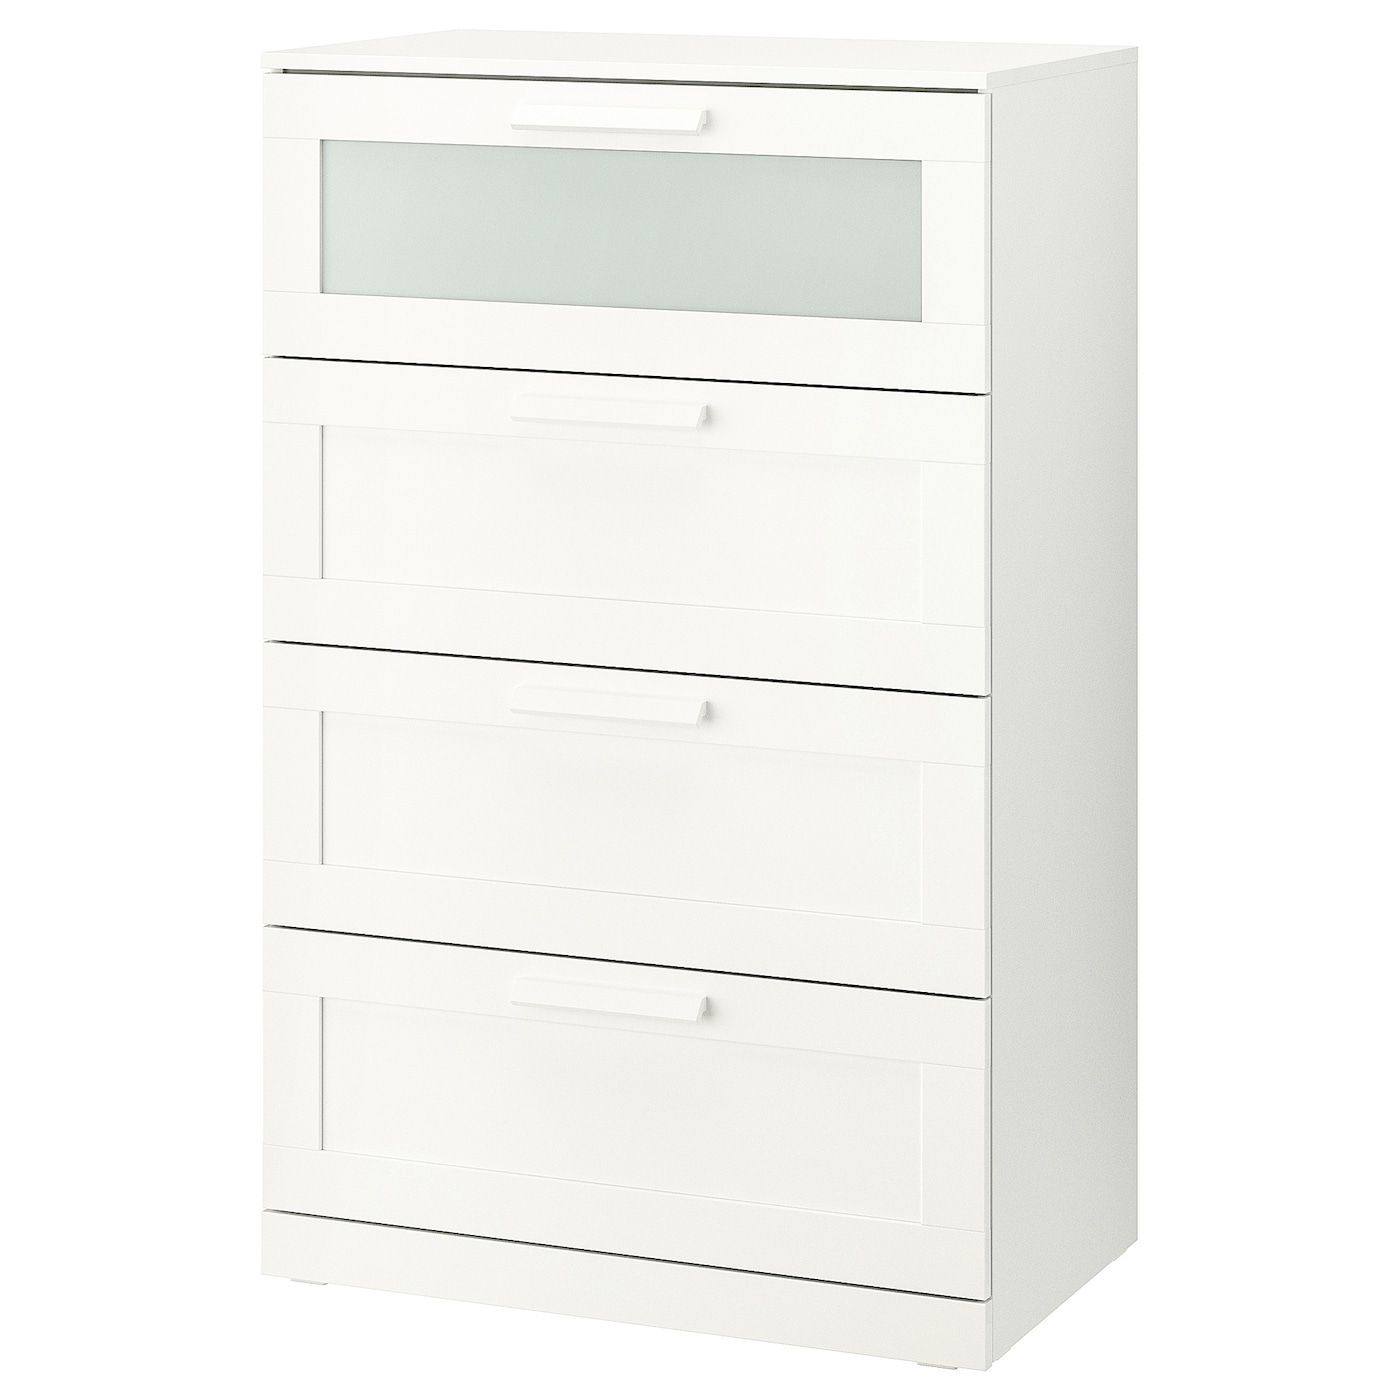 Picture of: Brimnes 4 Drawer Dresser White Frosted Glass Ikea